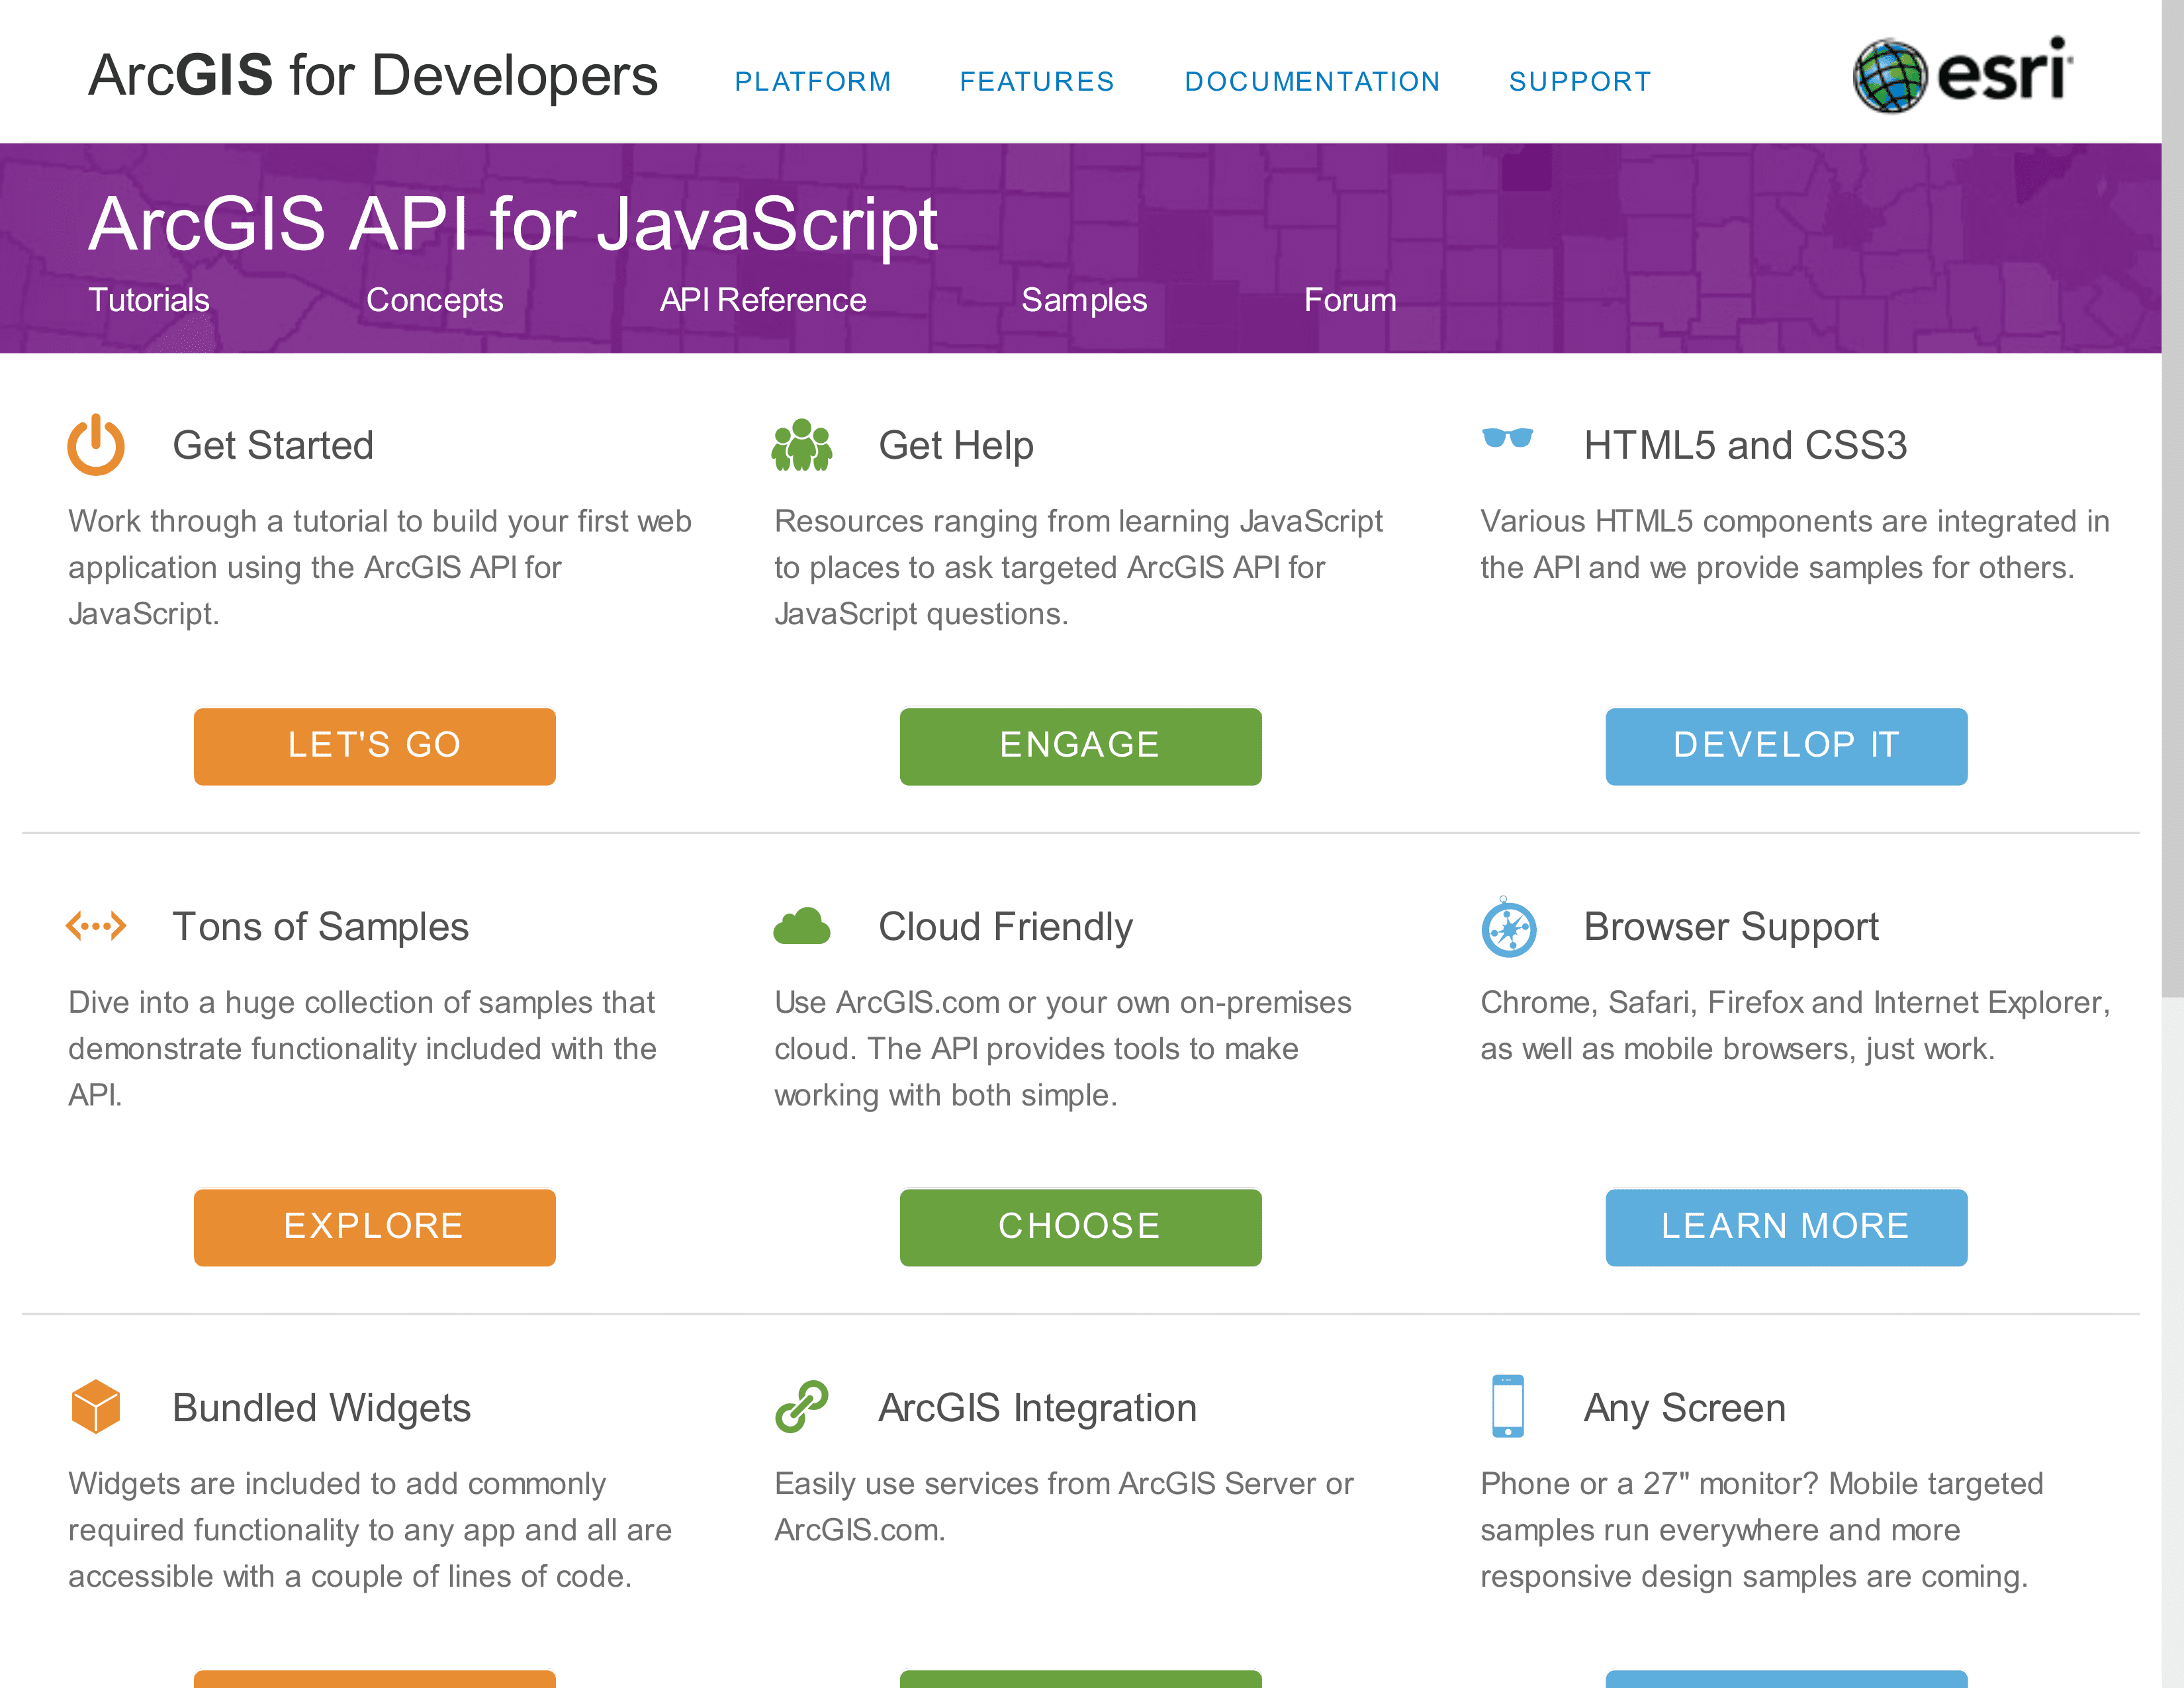 The ArcGIS API for JavaScript homepage offers a wealth of API documentation, samples, and framework links for the JavaScript developer.